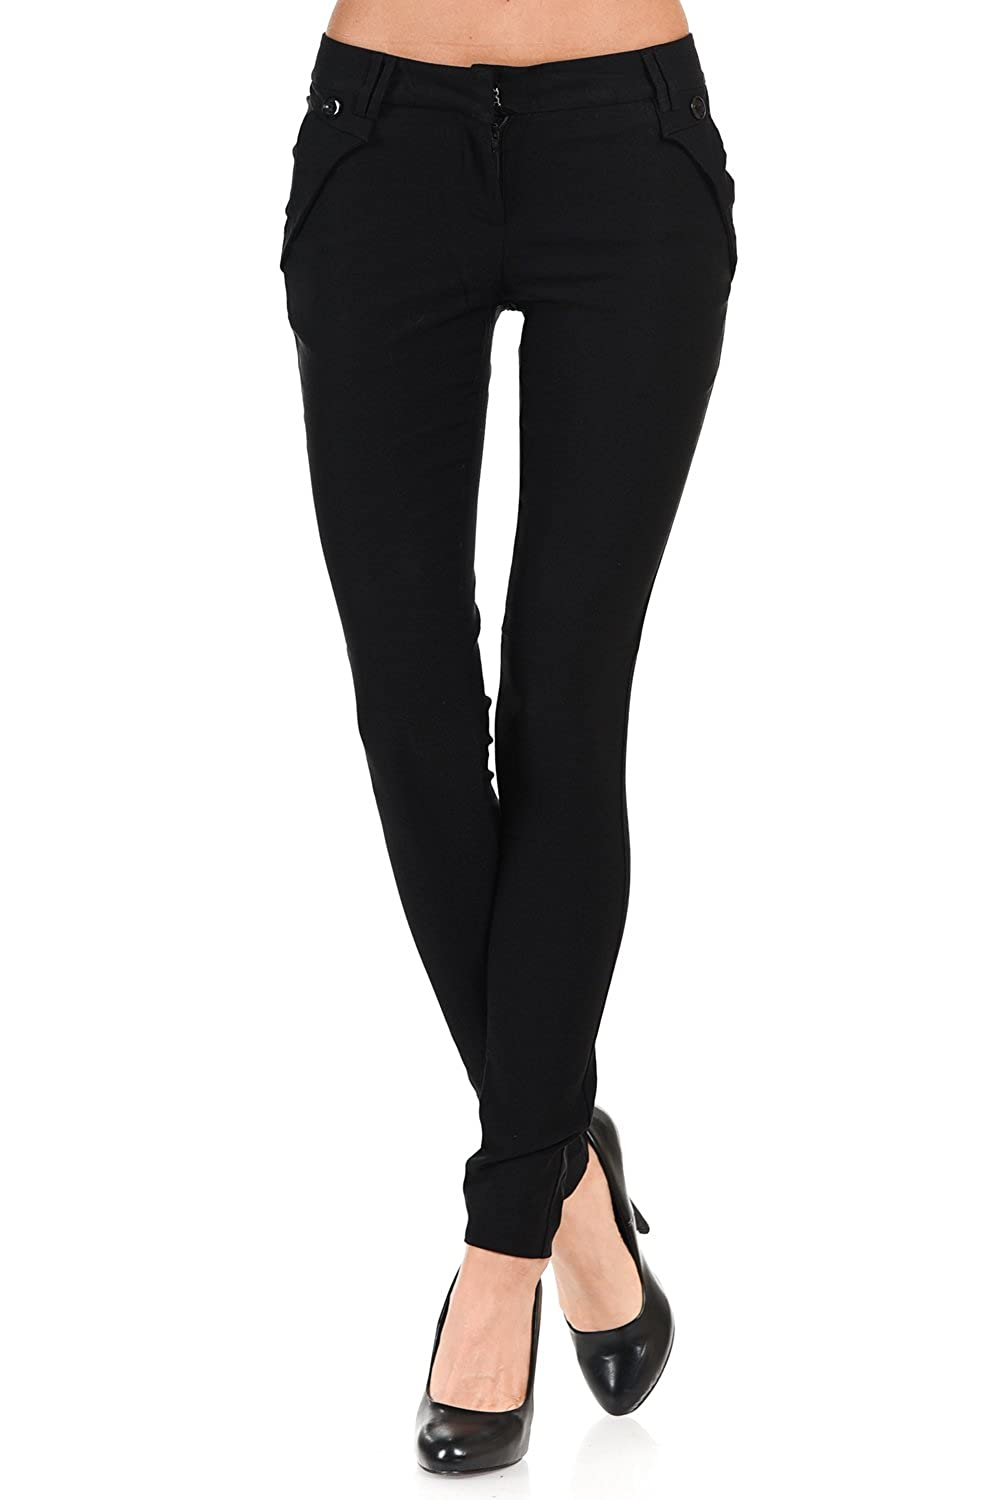 VIRGIN ONLY Women's Button Zipper Skinny Trousers Pants PTGRP_2